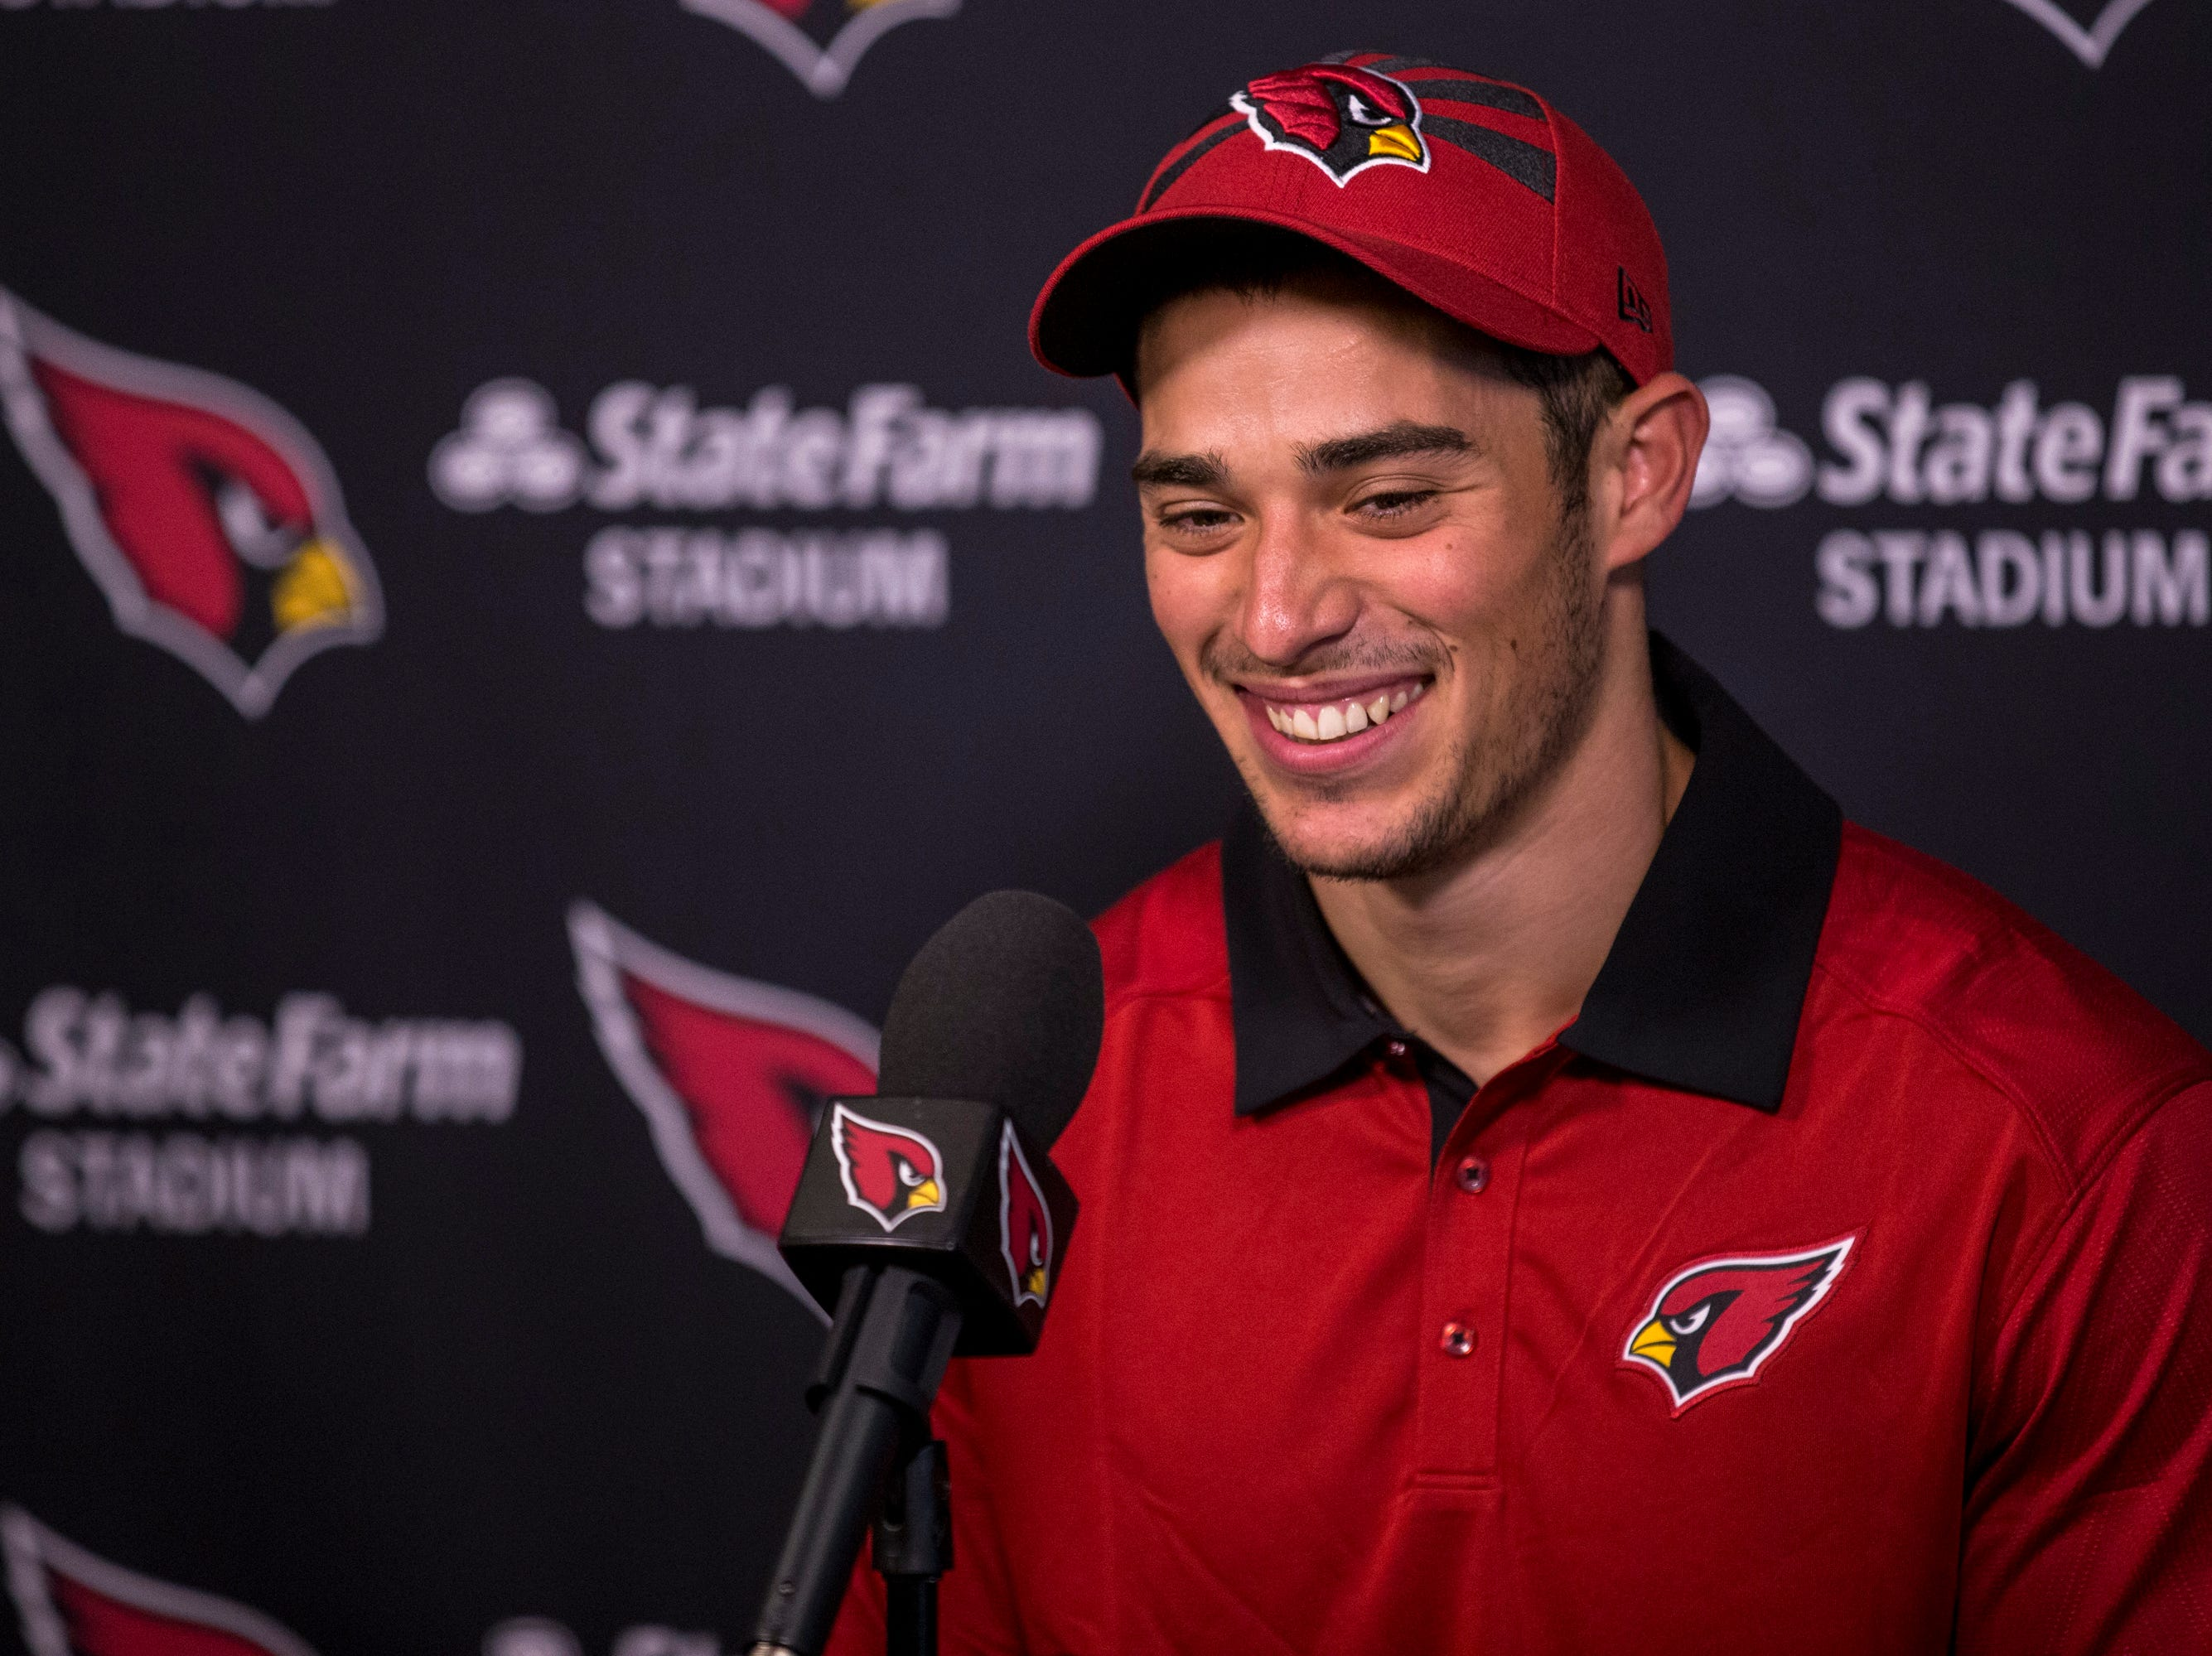 Cardinals wide receiver Andy Isabella speaks during a press conference on Thursday, May 9, 2019, in Tempe, Ariz.